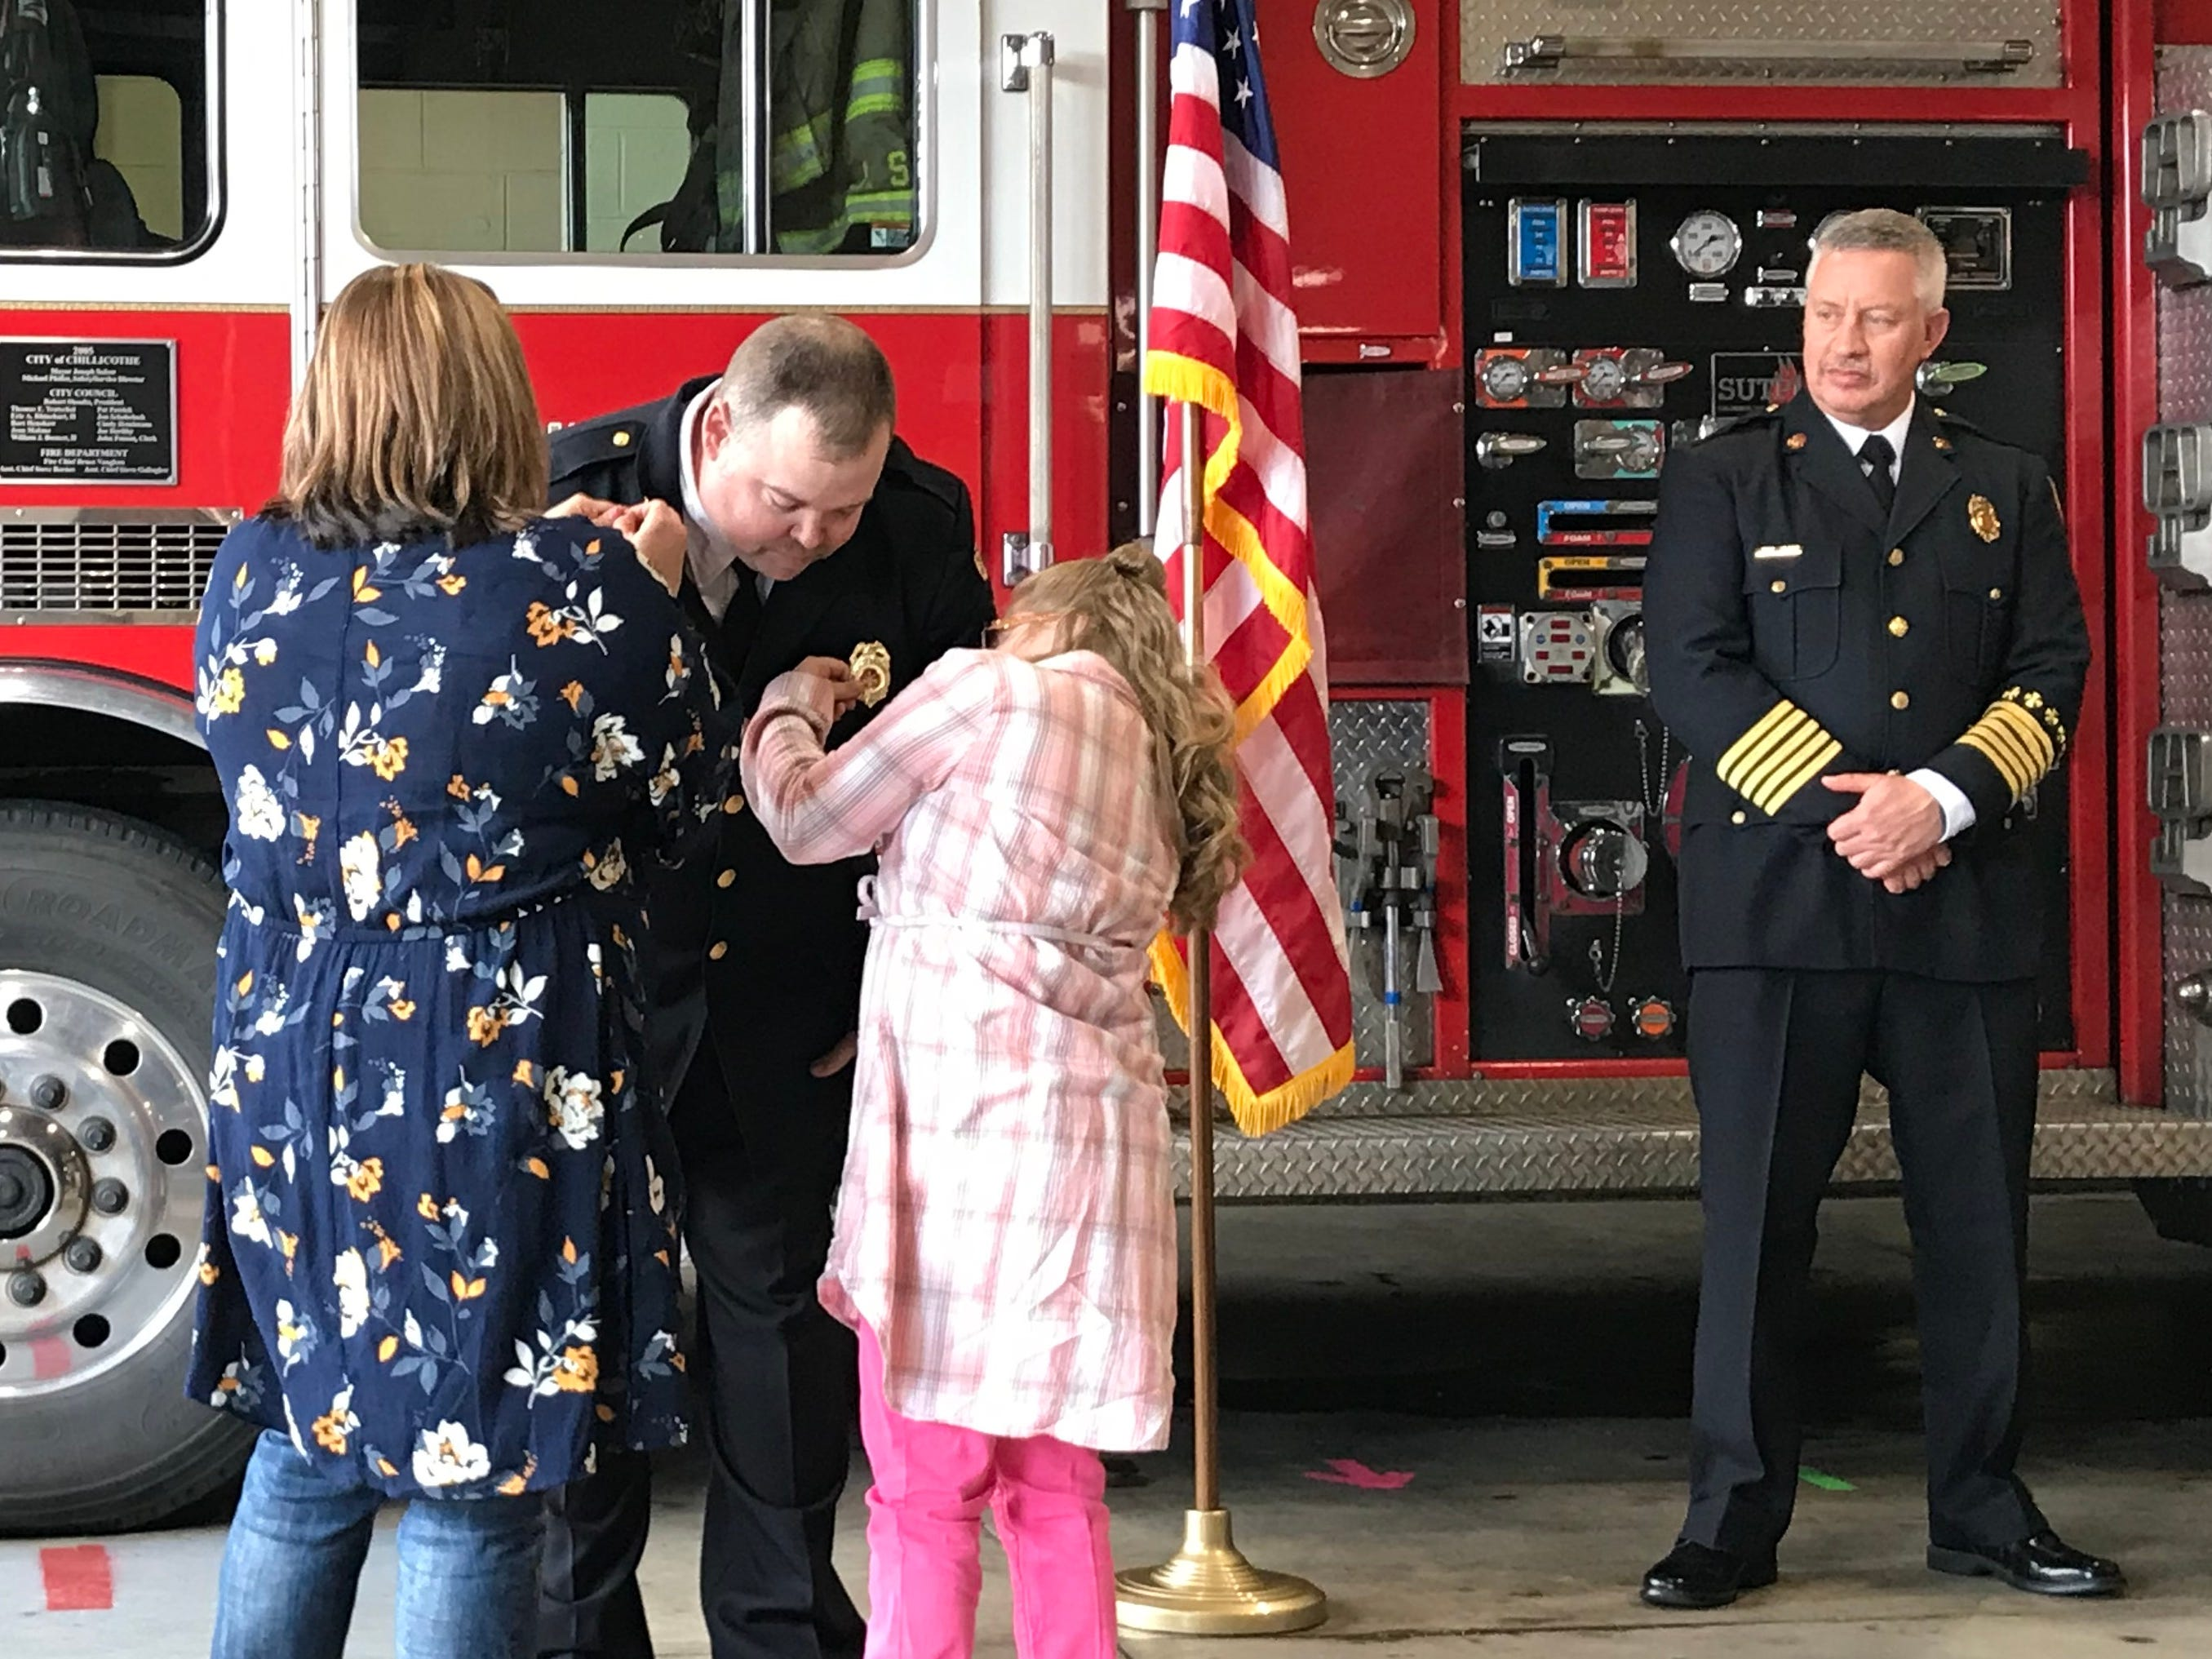 Chillicothe Fire Department's new Assistant Chief Aaron Knotts bends down as his wife Belinda and 10-year-old daughter Sara affix his new pins while Chief Jeff Creeds watches during a pinning and promotion ceremony on Friday, April 26, 2019, at Station 1.